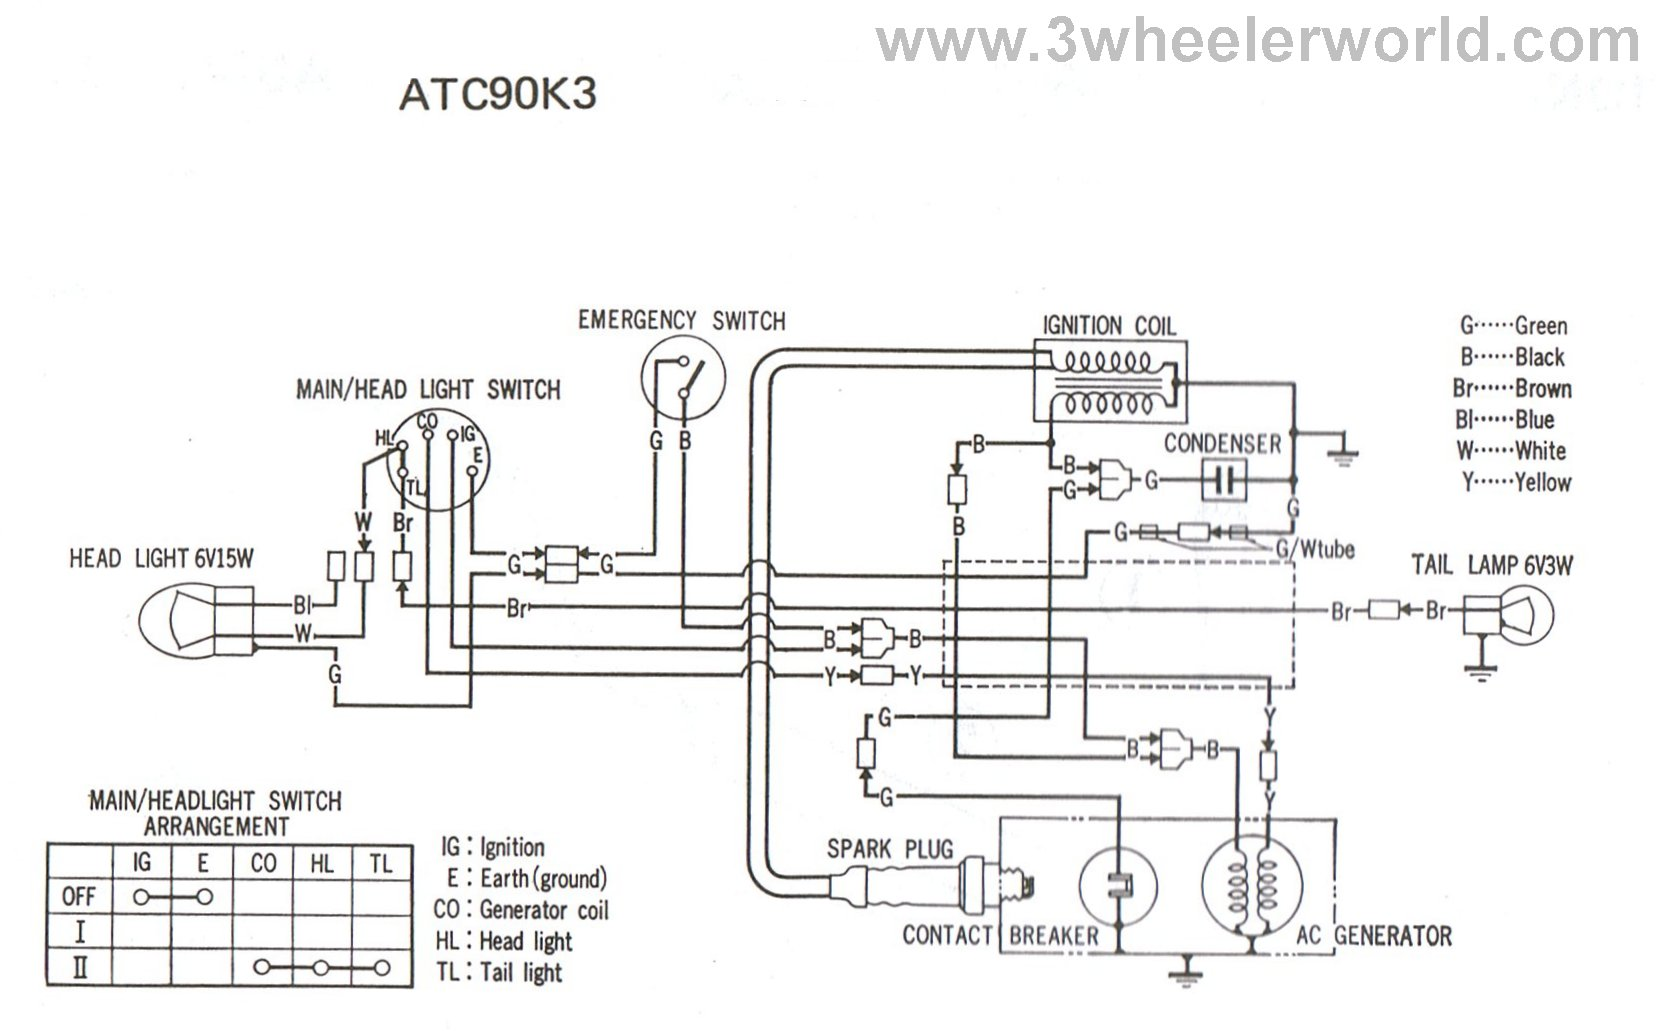 Honda 250 Atv Wiring Diagrams Library Diagram Parts Winch Http Www Partzilla Com Search Polaris Atc90 K3 Factory